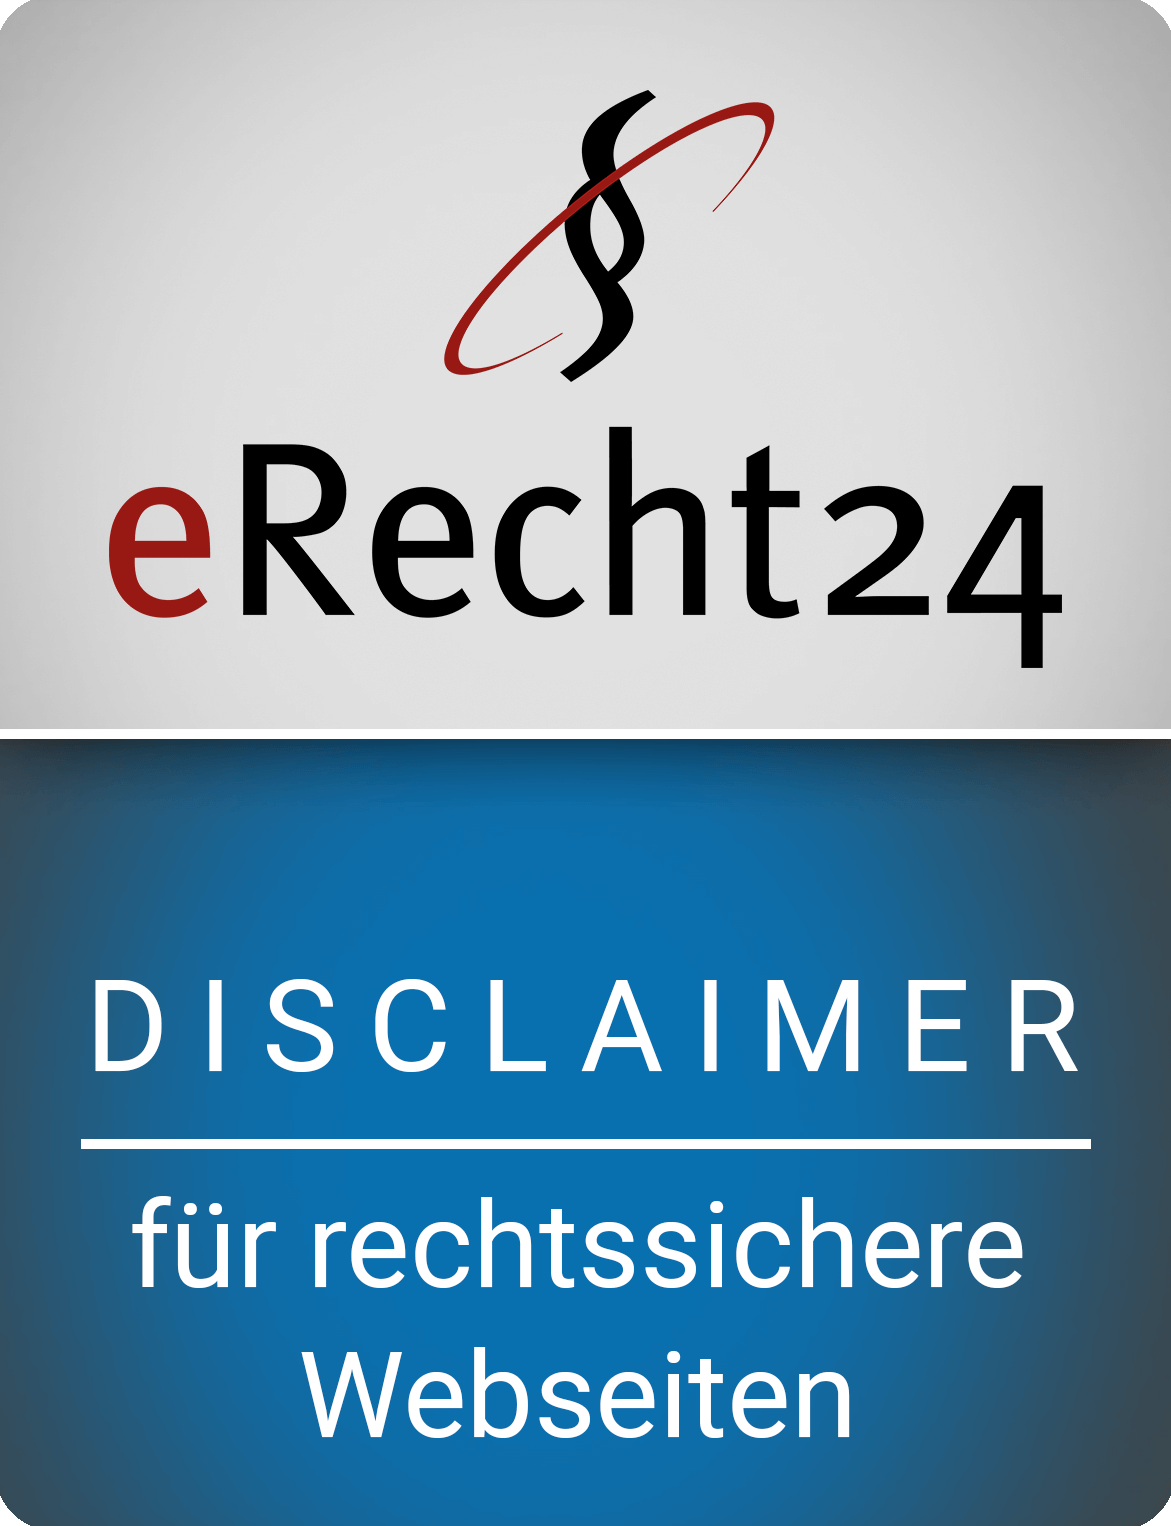 e-Recht24.de_Siegel-Disclaimer